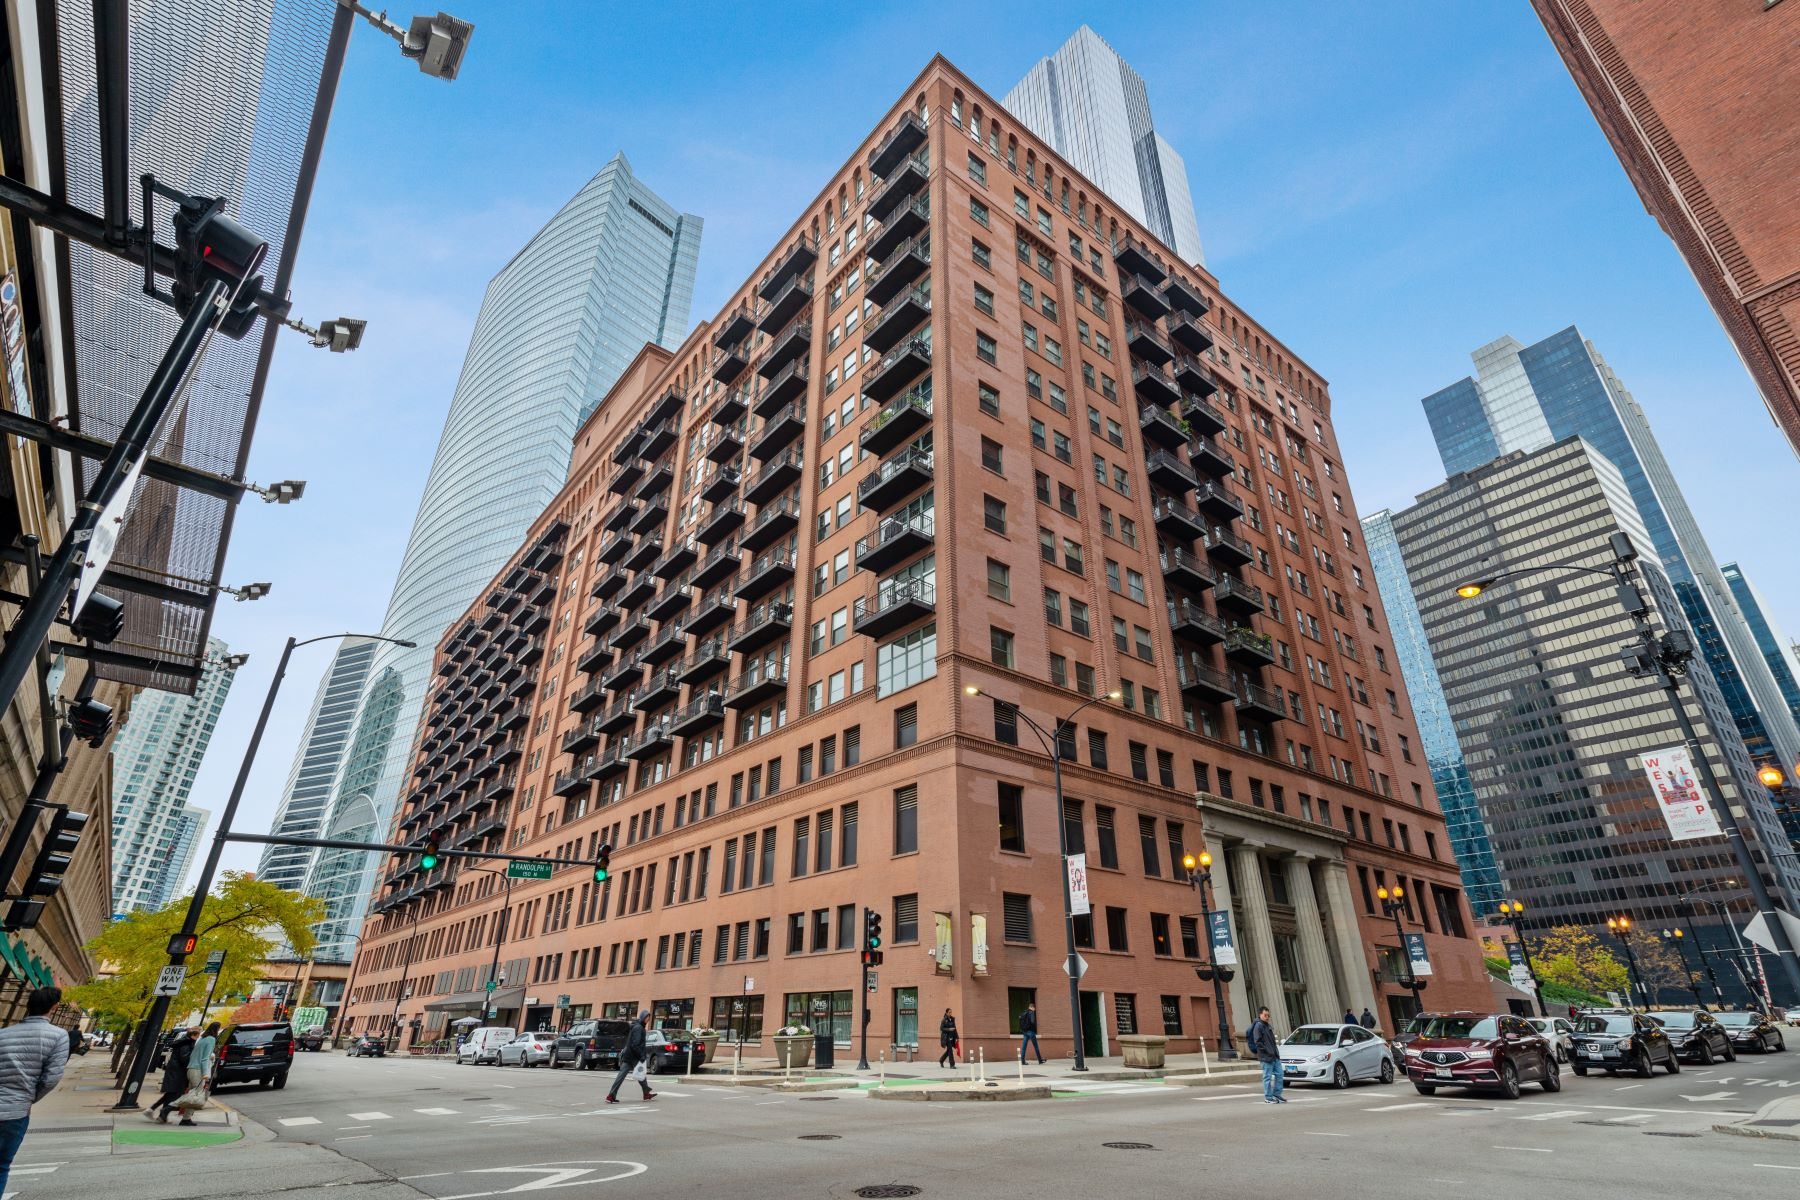 Single Family Homes for Active at Premier West Loop Condo 165 N Canal Street Unit 512 Chicago, Illinois 60606 United States